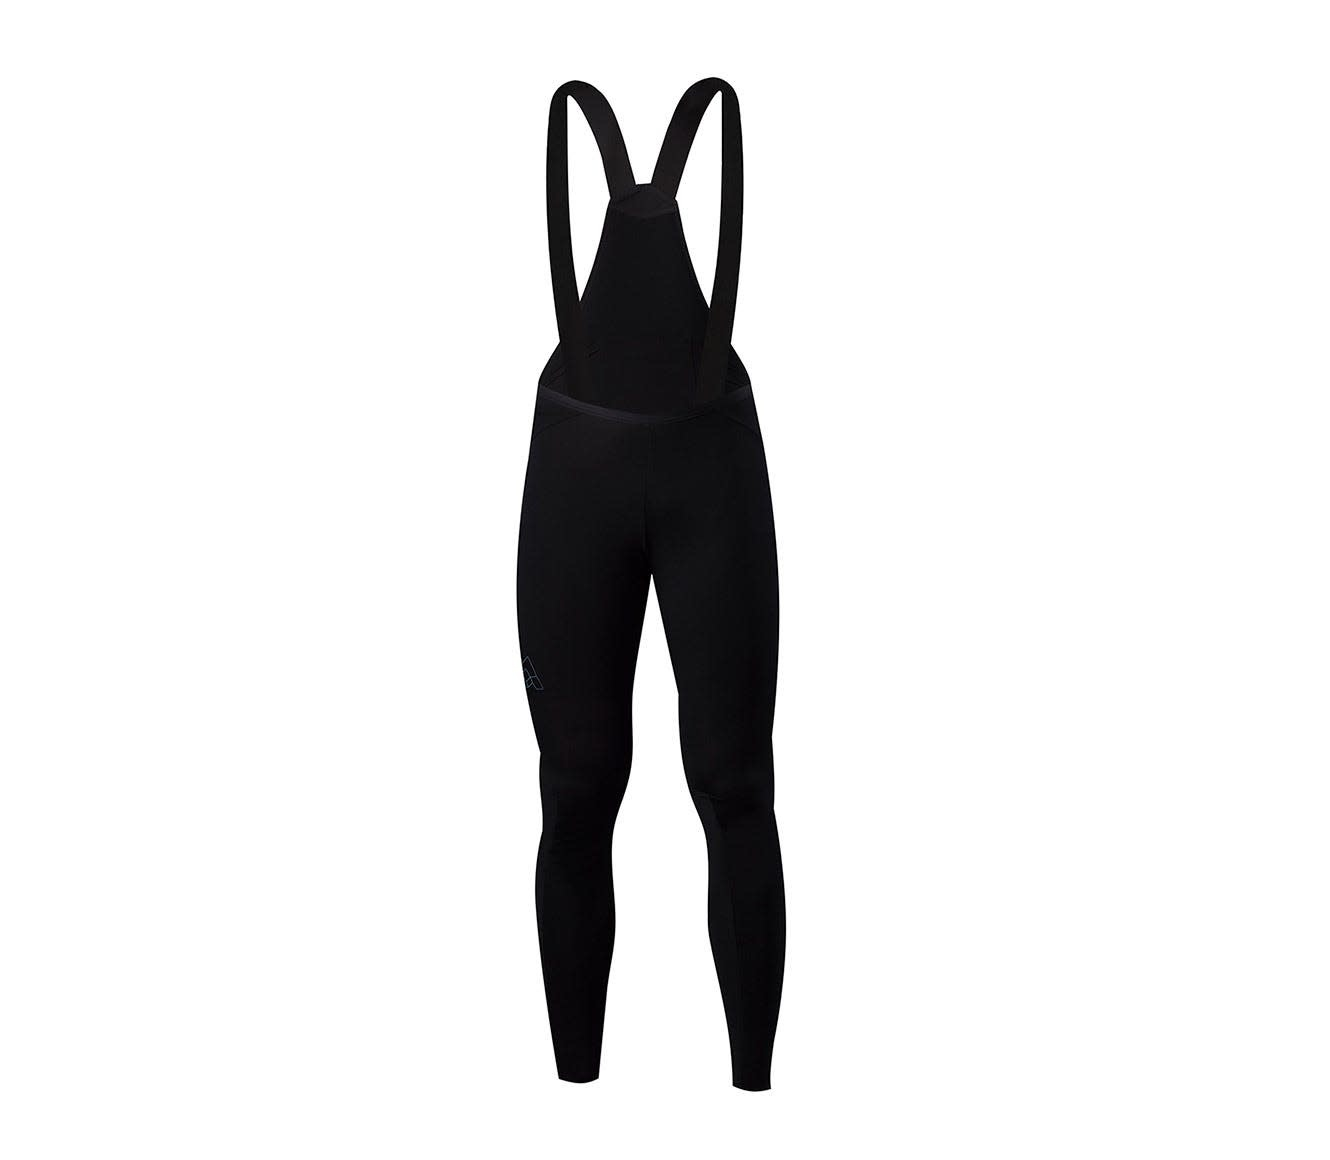 7 Mesh, TK1 Bib Tight, Men's (LG)